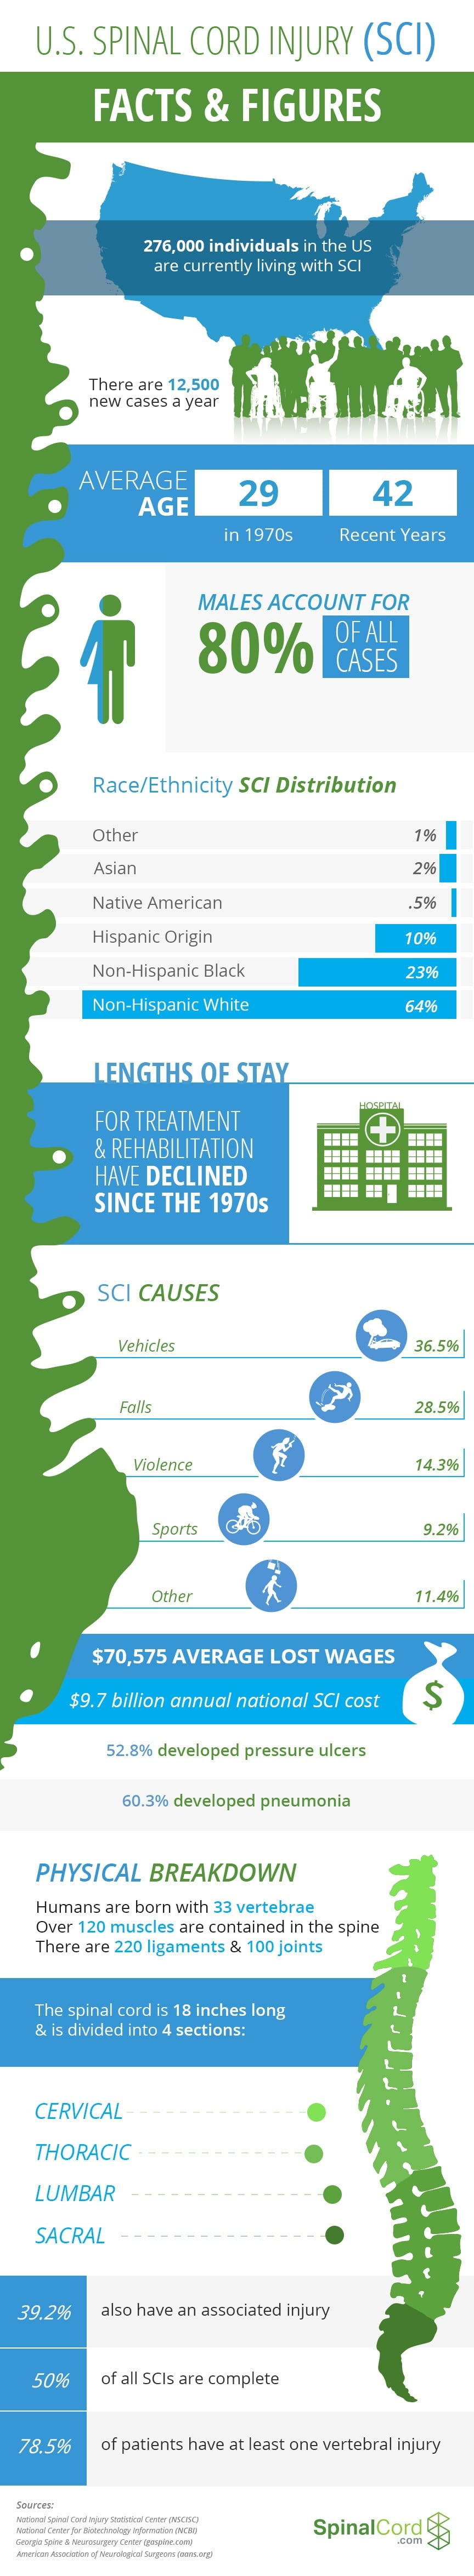 Spinal Cord Injury Facts Infographic